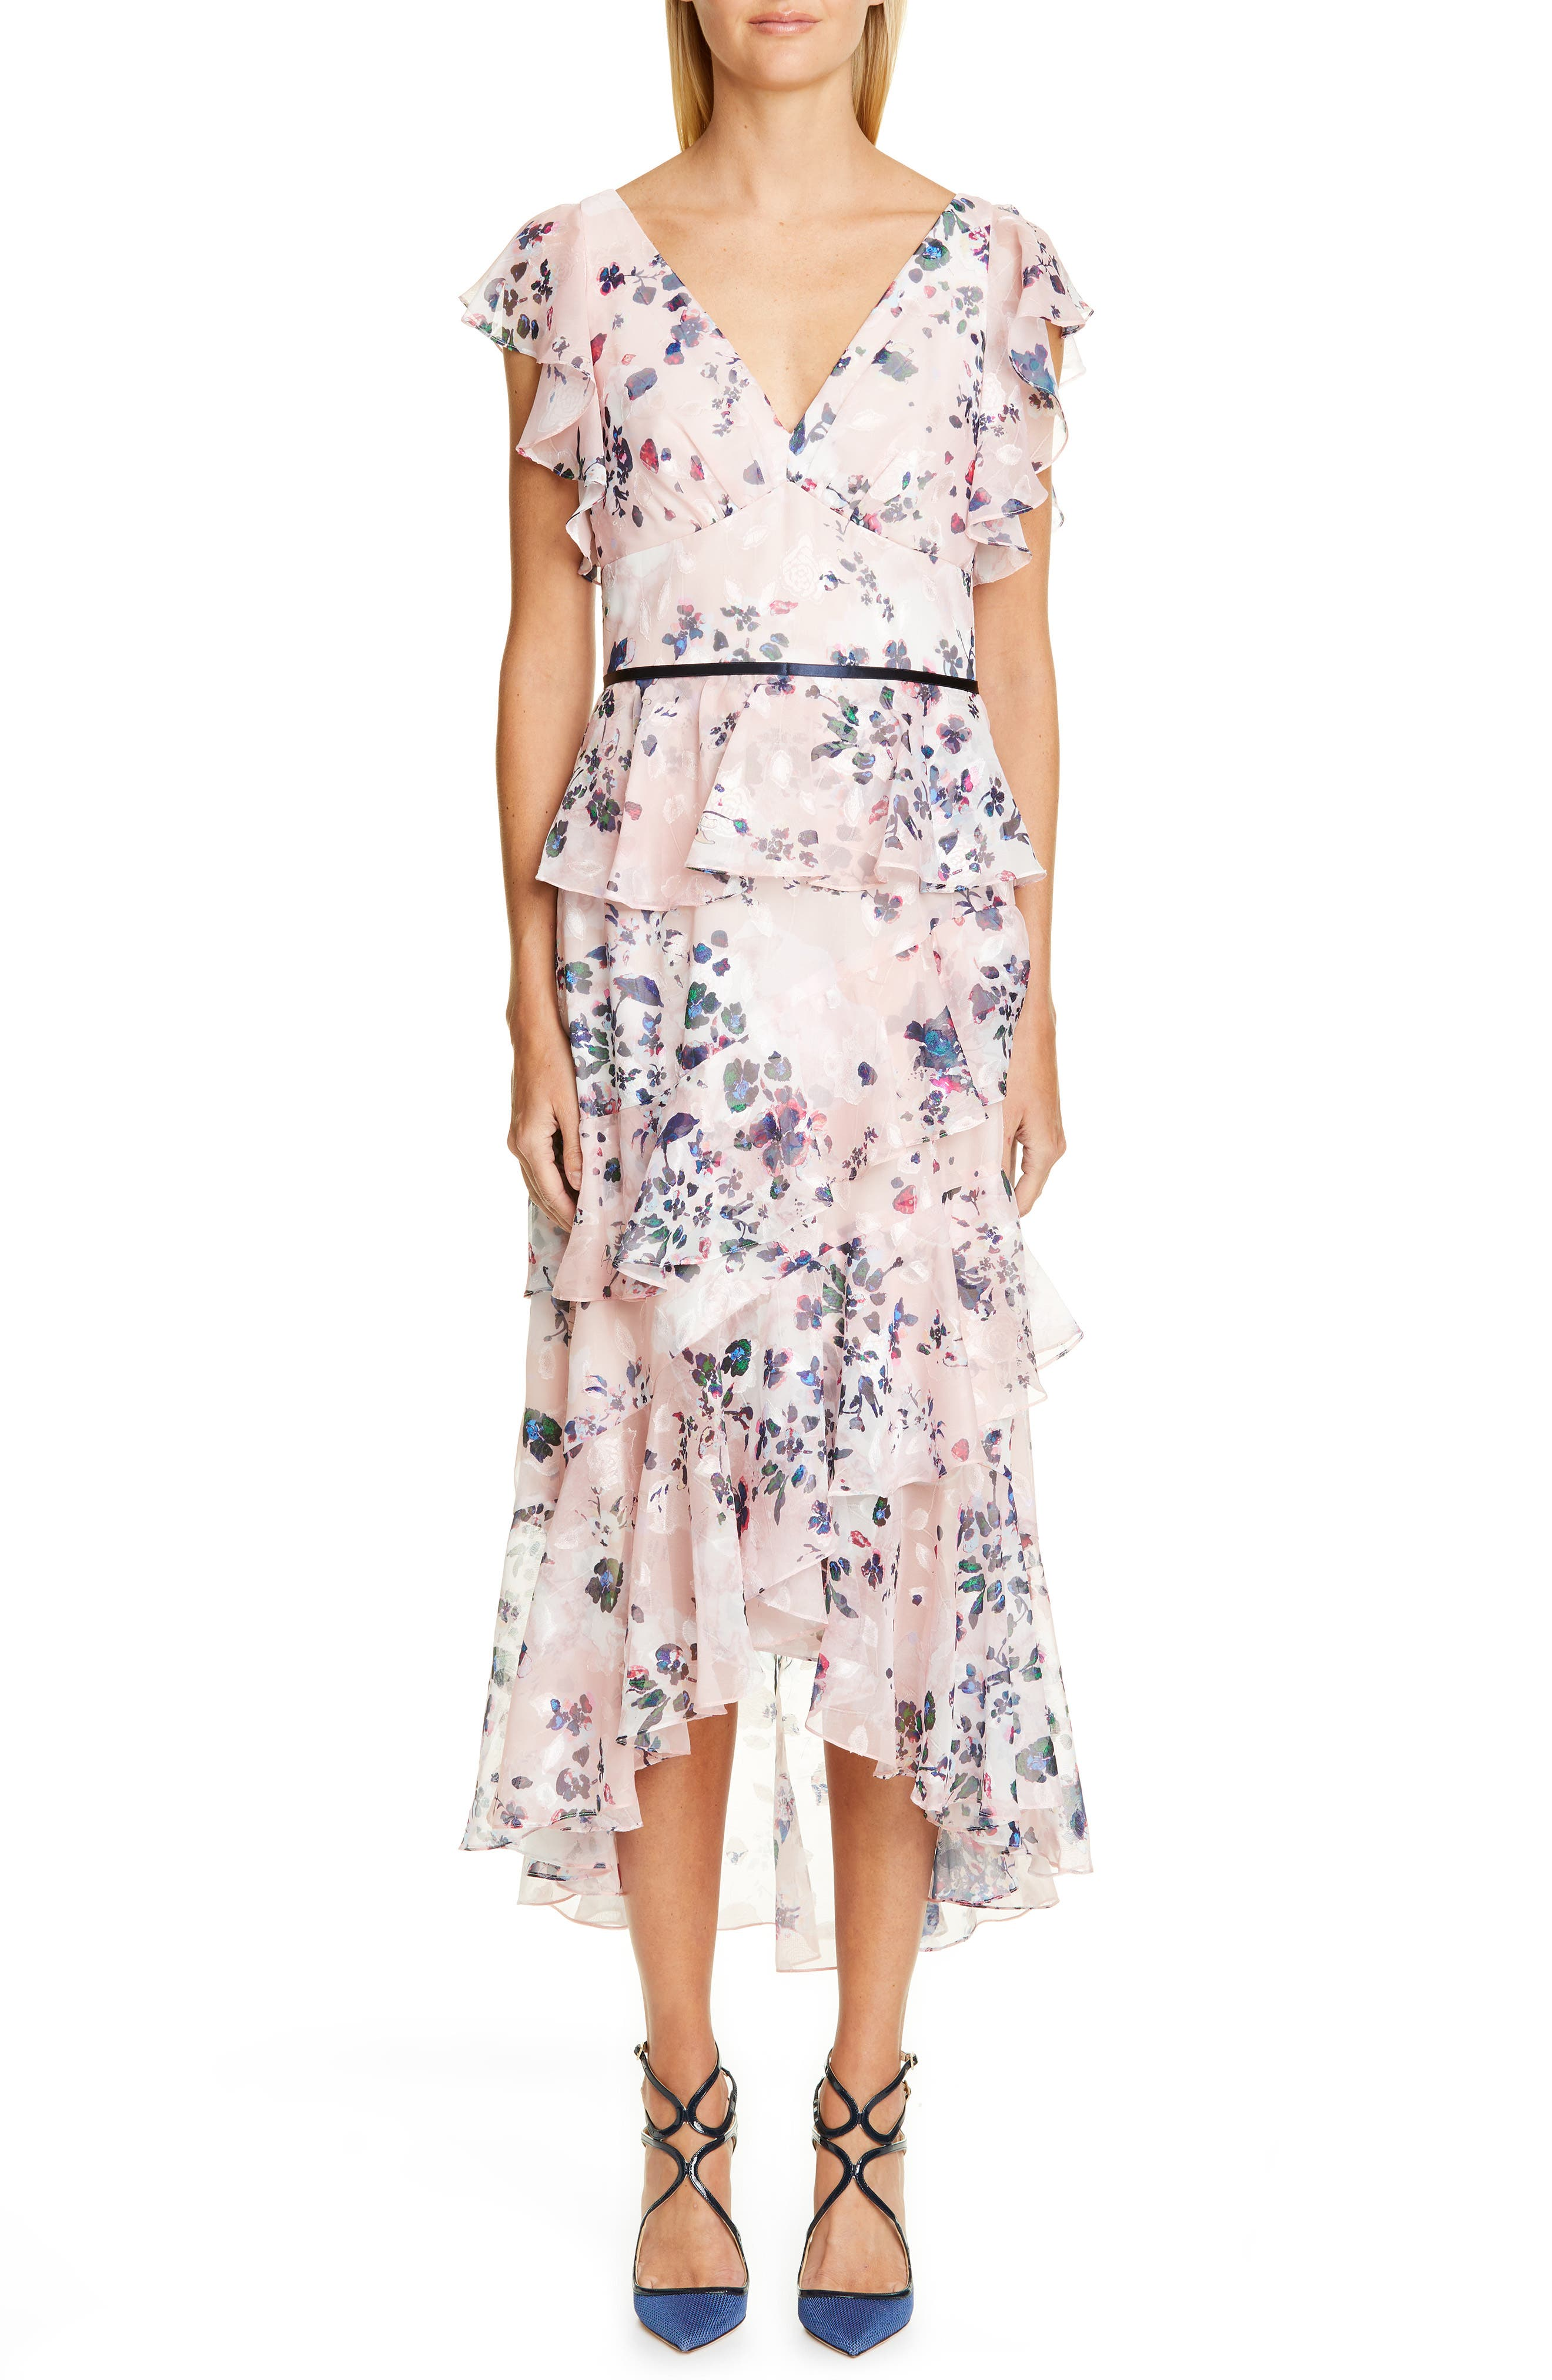 MARCHESA NOTTE Floral Ruffle Tiered Midi Dress, Main, color, 680